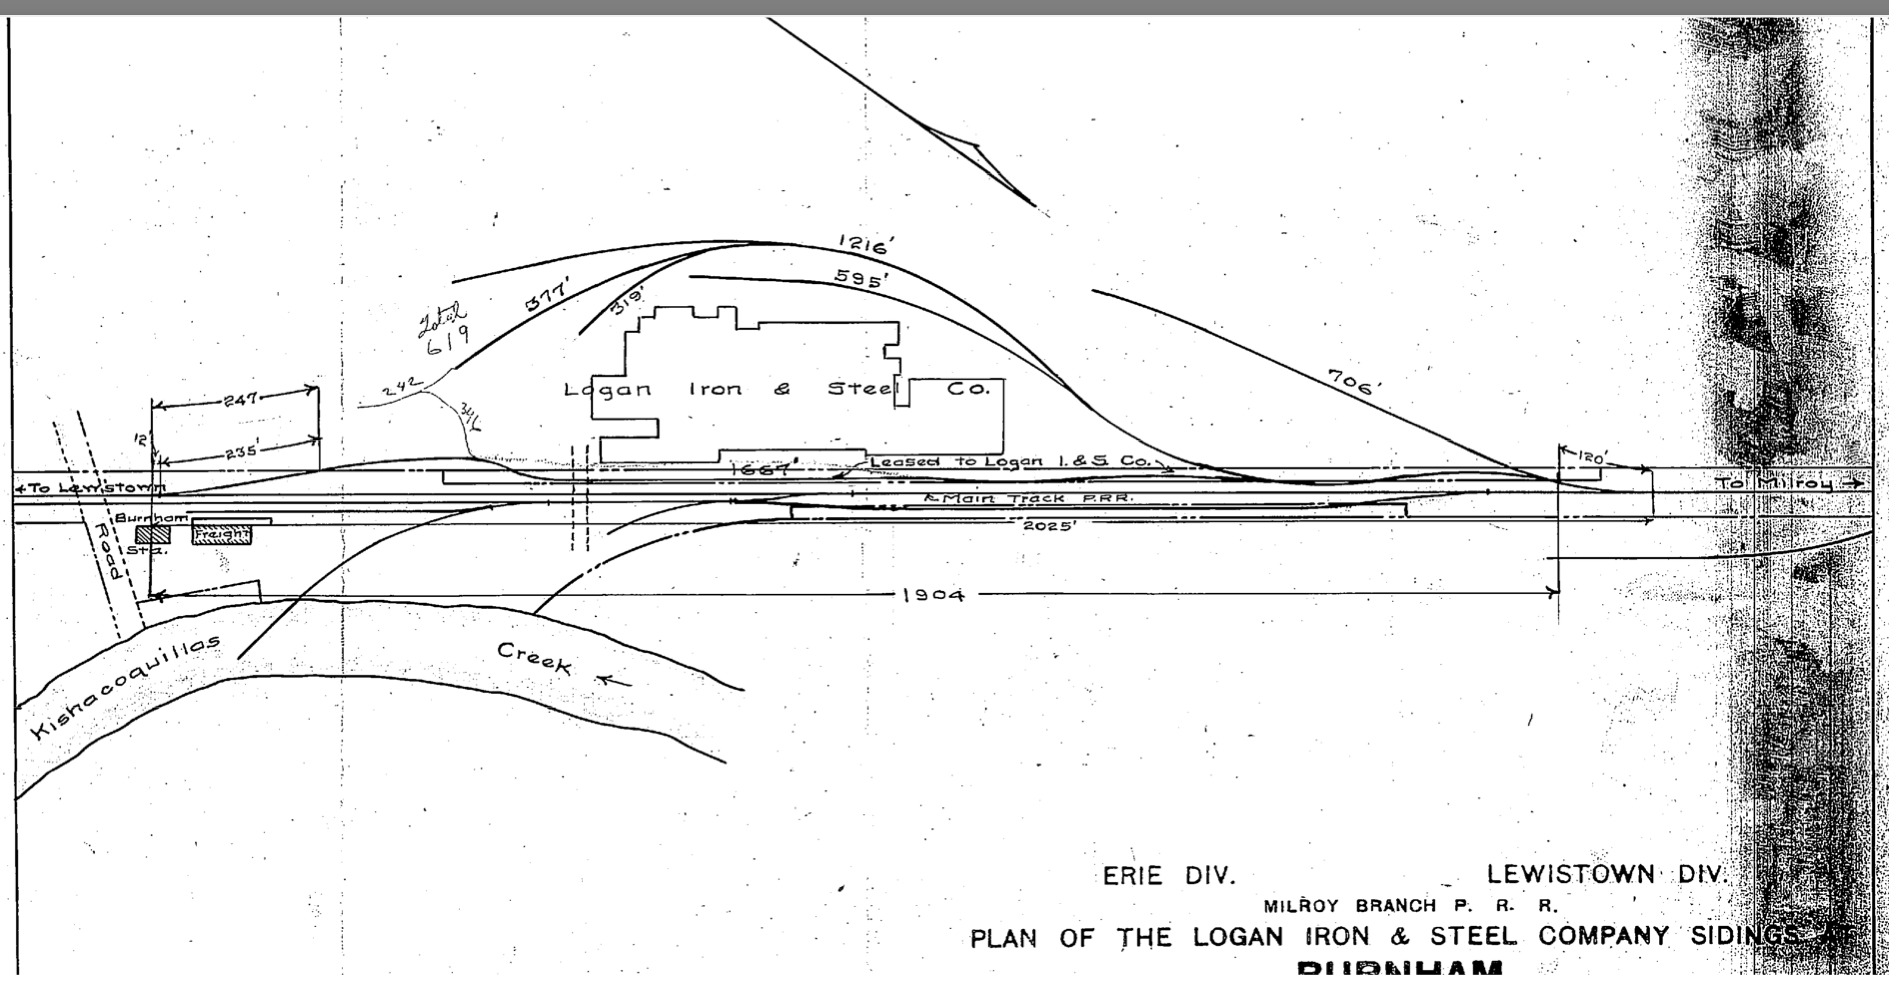 Post 1905 Track Diagram of Logan Iron Steel